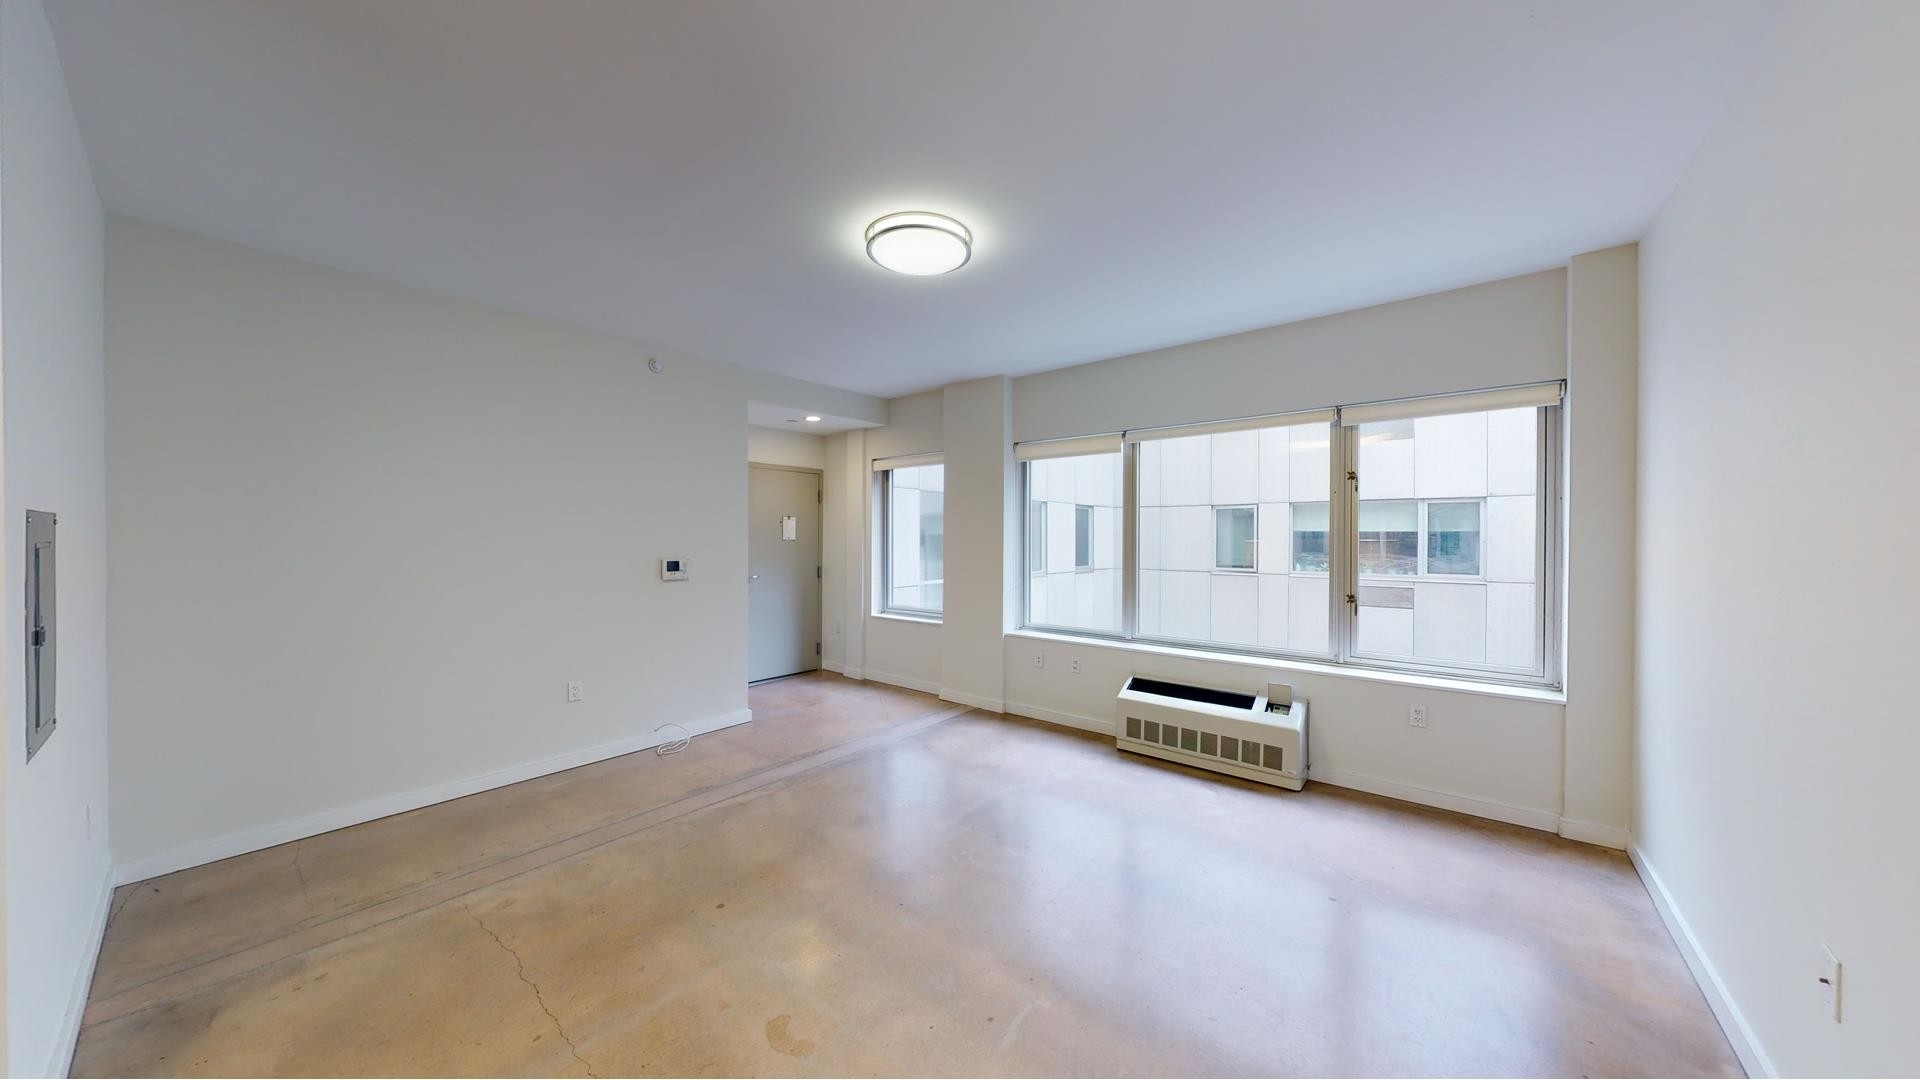 Property à The Stack, 4857 Broadway, 4C Inwood, New York, NY 10034